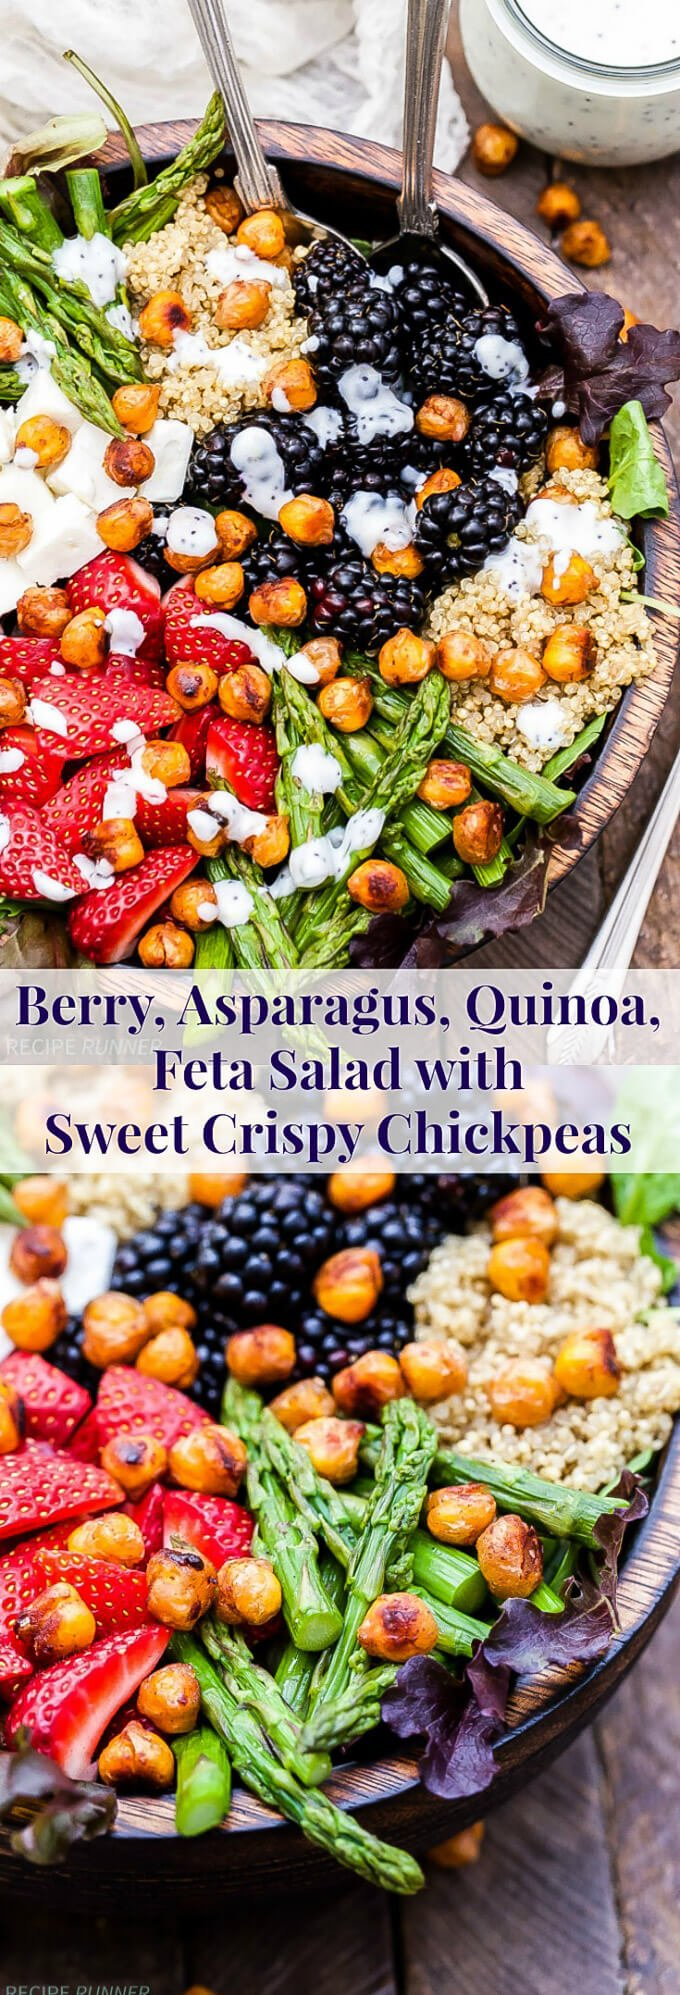 Berry, Asparagus, Quinoa and Feta Salad with Sweet Crispy ...